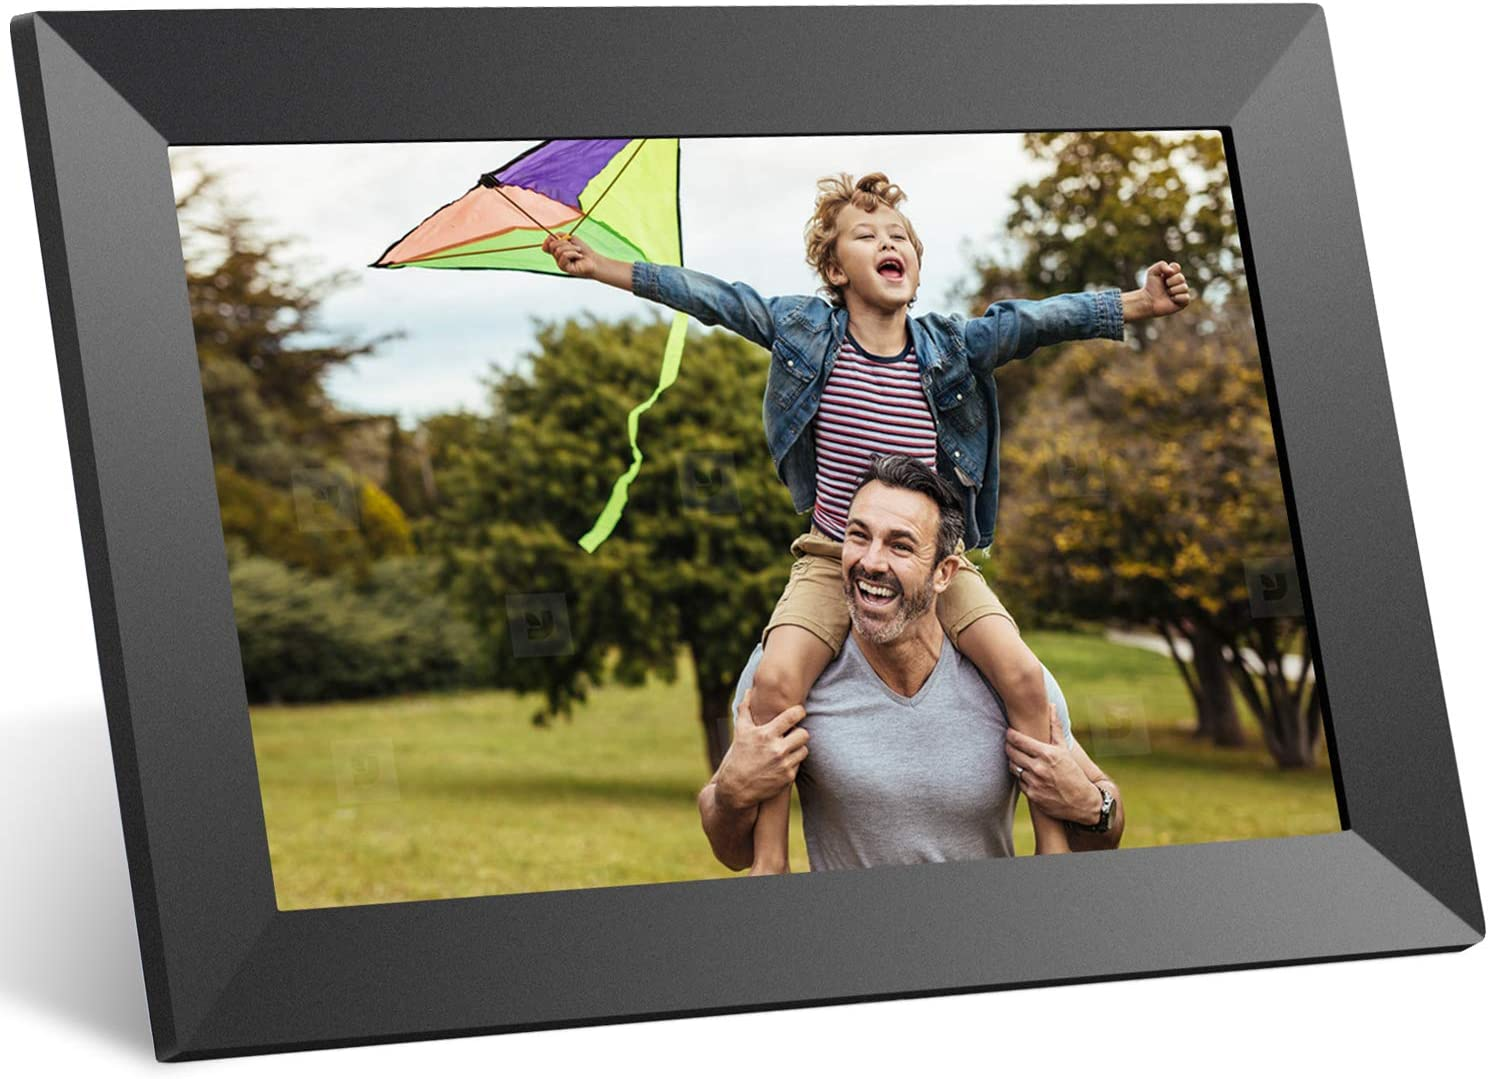 Anyuse Digital Picture Frame 10 inch WiFi 16GB Photo Frame with IPS HD Touch Screen, Share Photos or Videos via APP, Auto-Rotate, Wall Mountable, Portrait and Landscape, Holds Over 40,000 Pics